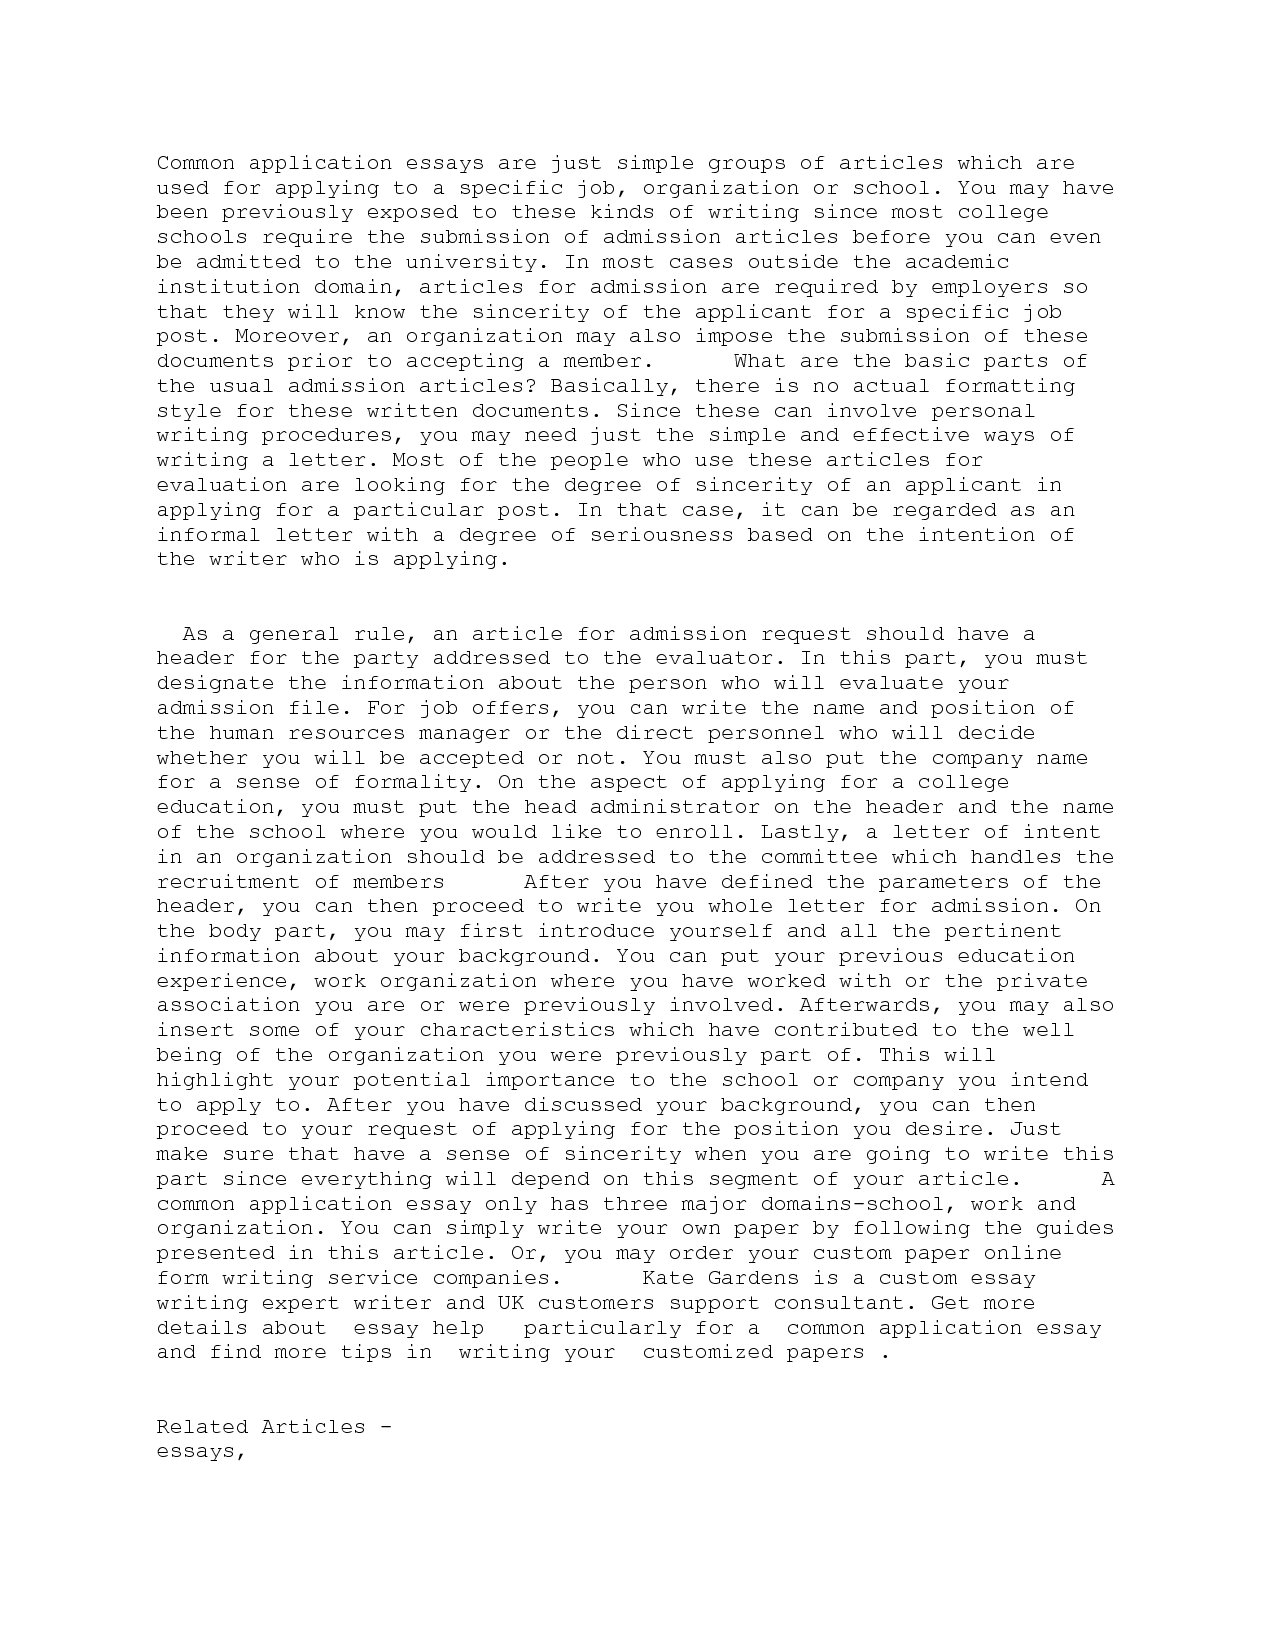 015 Common App College Essay Example Examples Of Essays For Application Transfer Ess Striking Format Word Limit Full